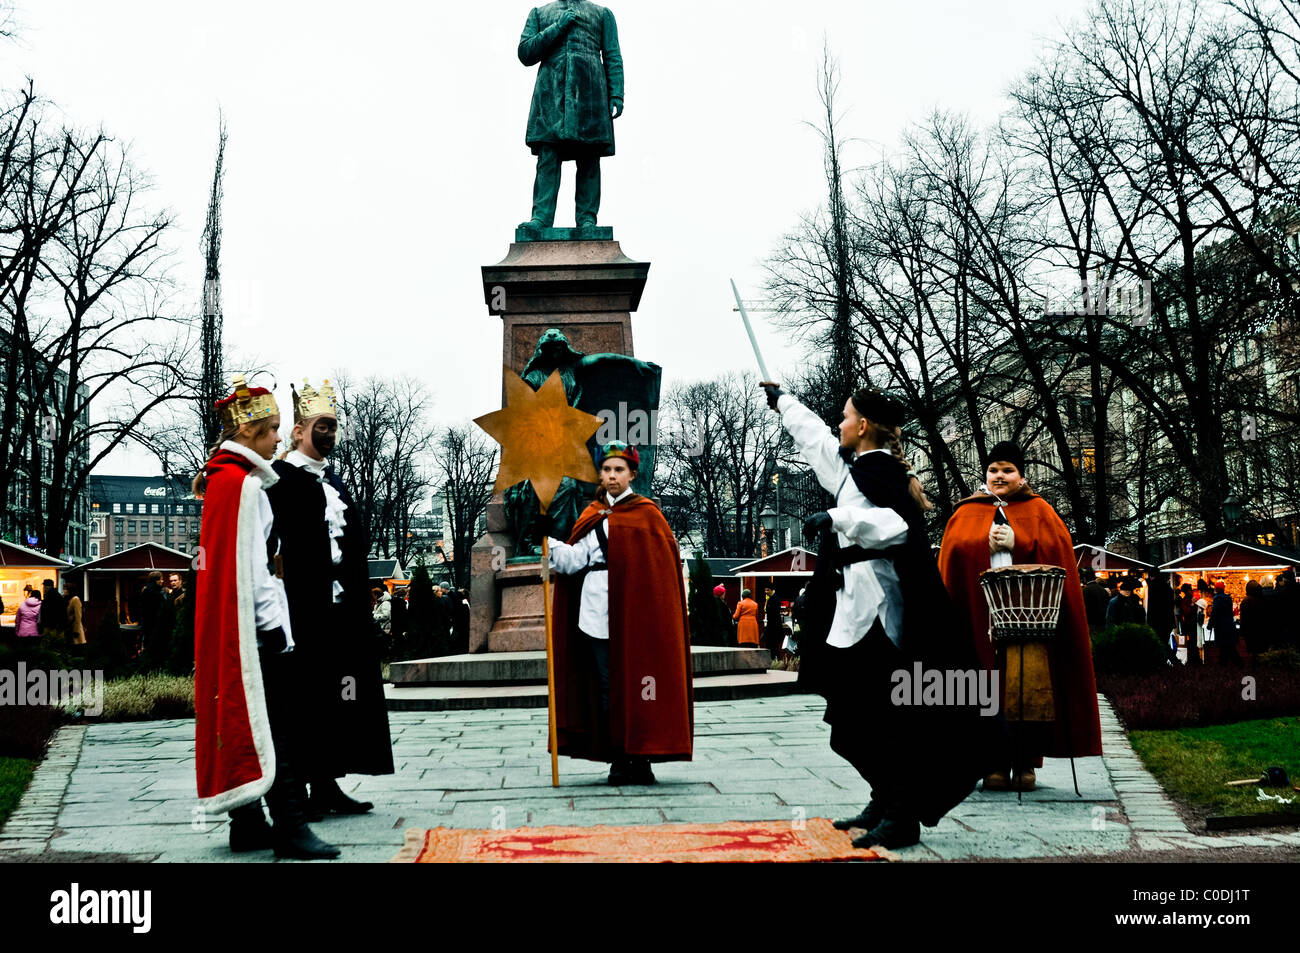 daily life Helsinki, Christmas street theater performance - Stock Image